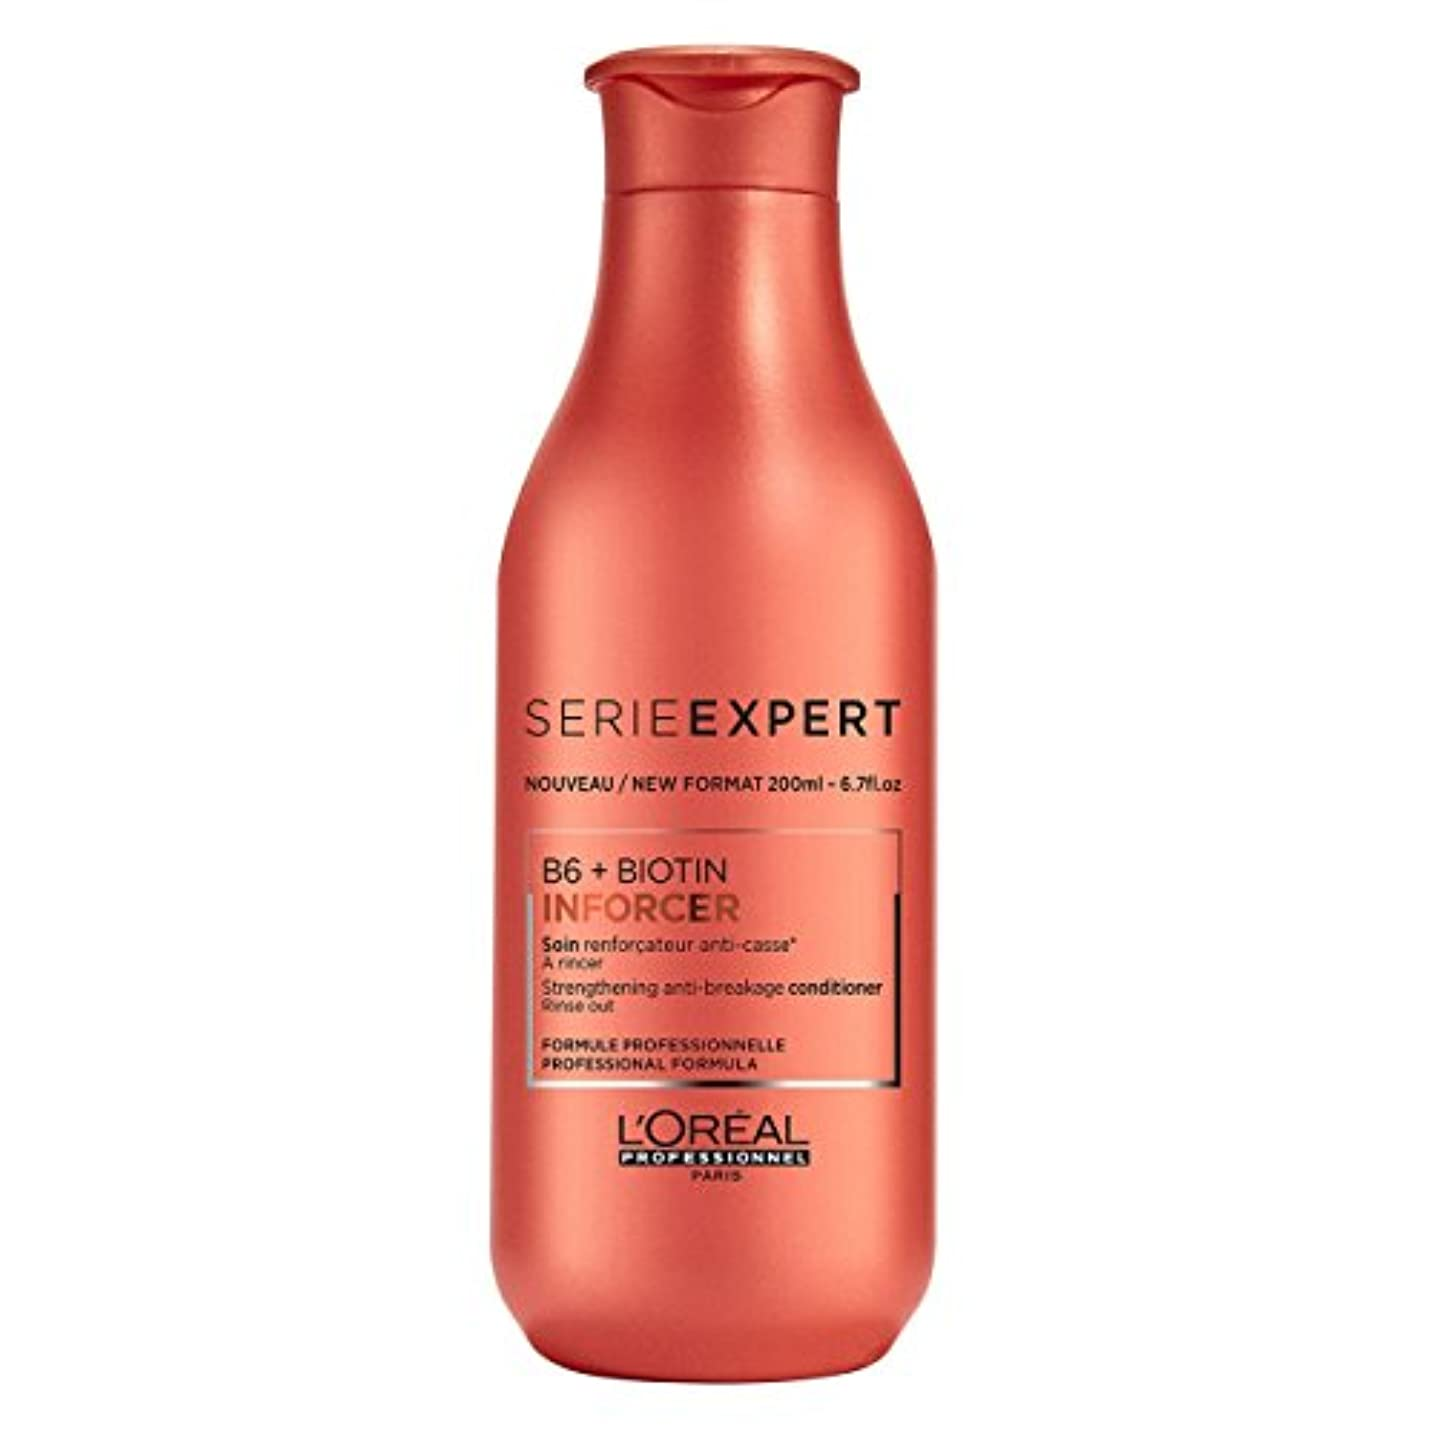 手伝う仲間注入L'Oreal Serie Expert B6 + Biotin INFORCER Strengthening Anti-Breakage Conditioner 200 ml [並行輸入品]